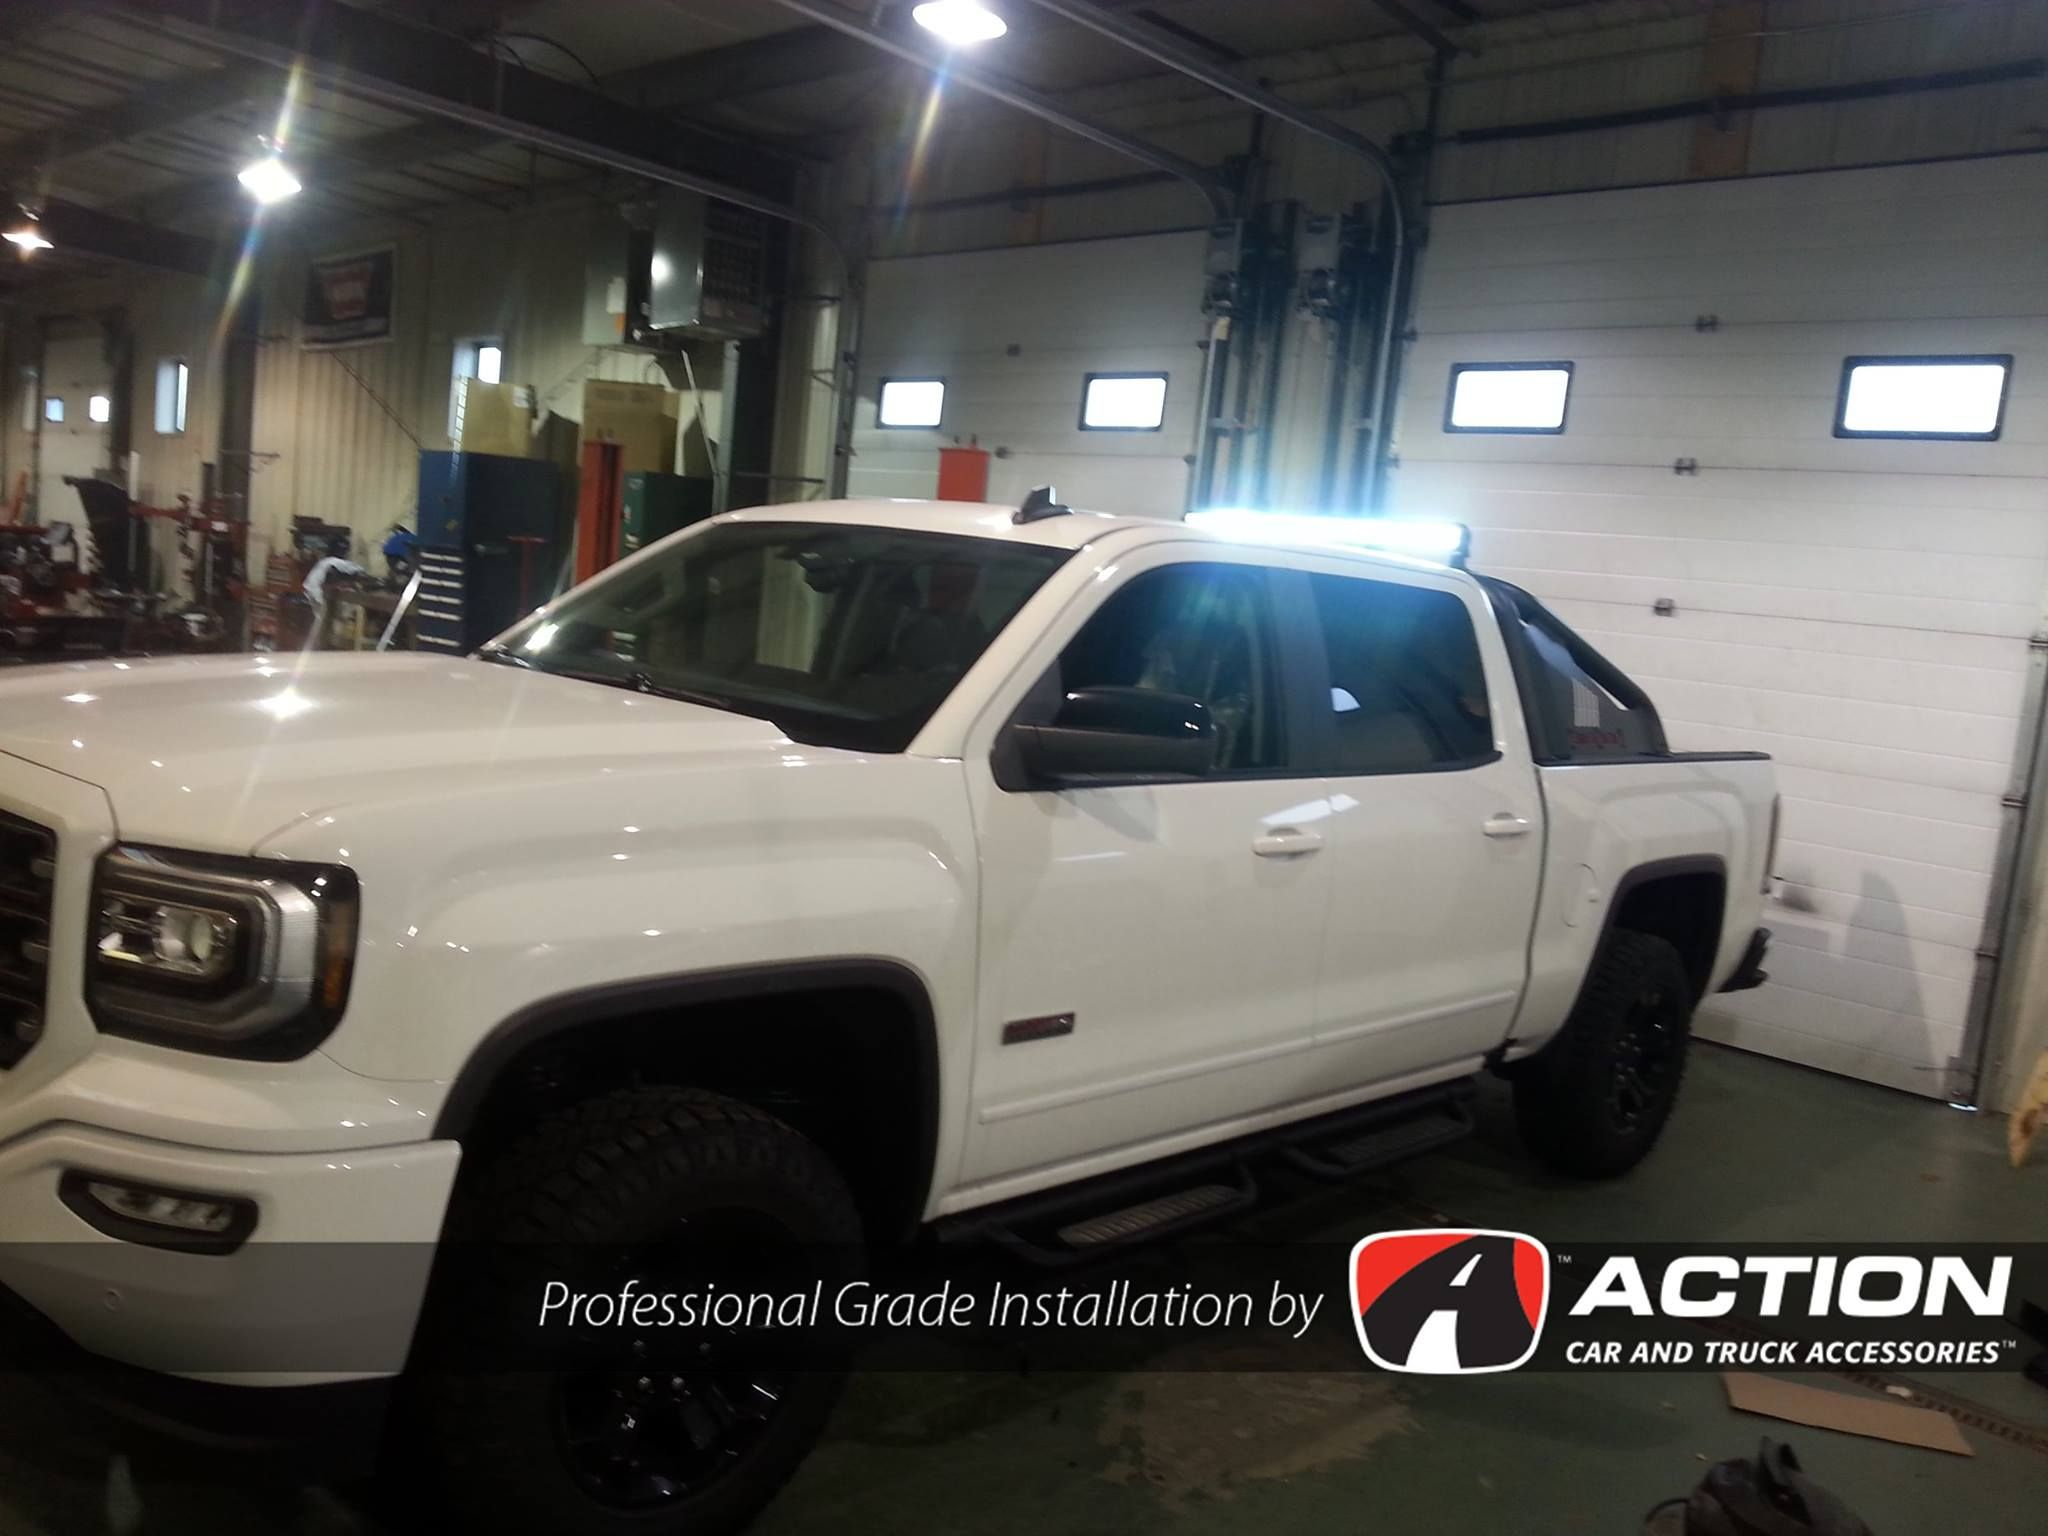 40 Light Bar By Rigid Industries Installed On This New 2016 Gmc